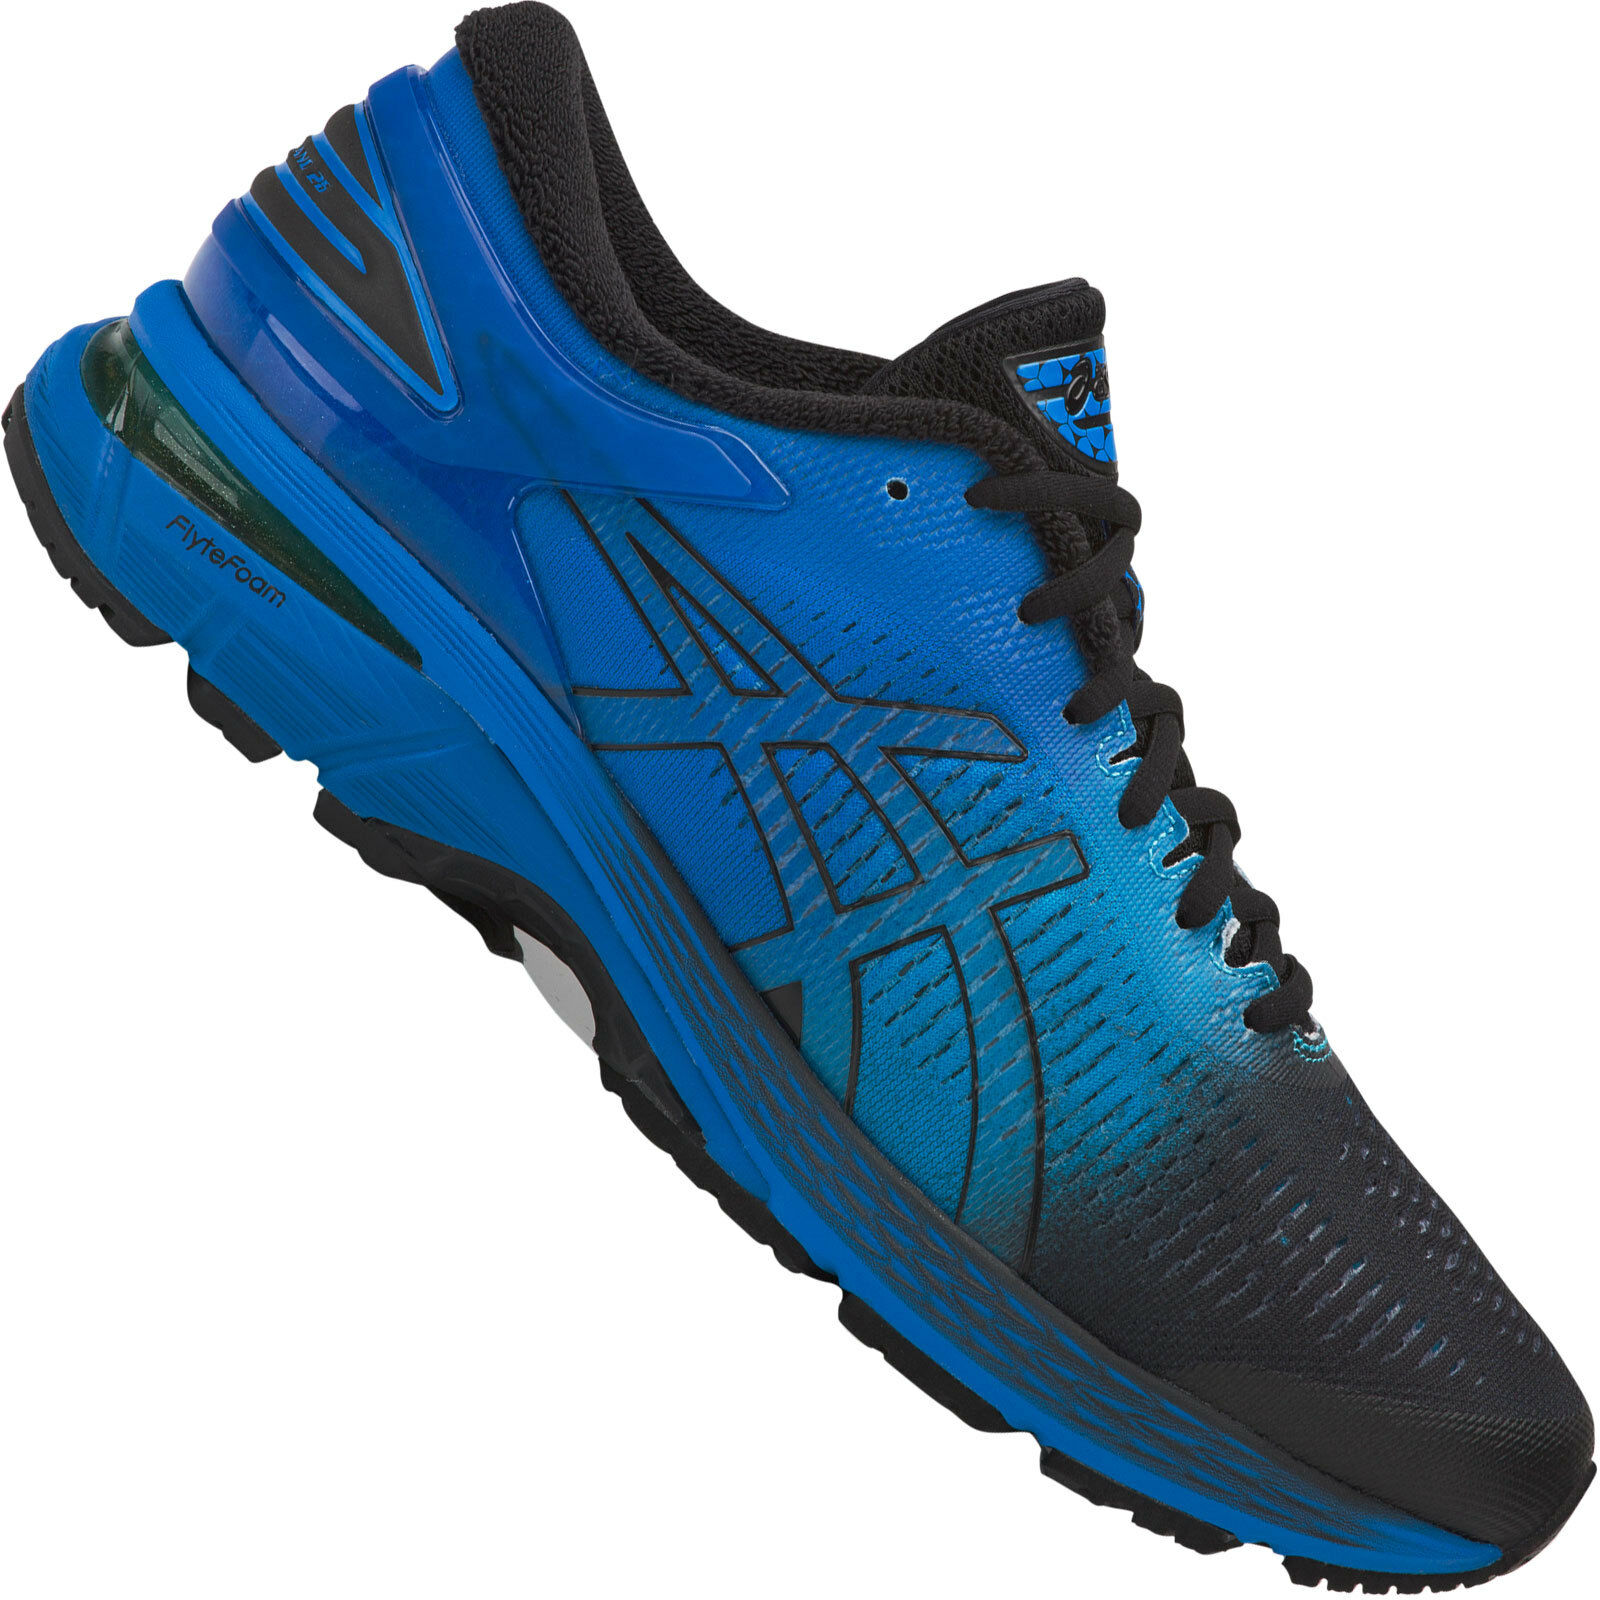 Asics Performance Gel-Kayano 25 Sp Men's Running shoes Winter Traning Sports